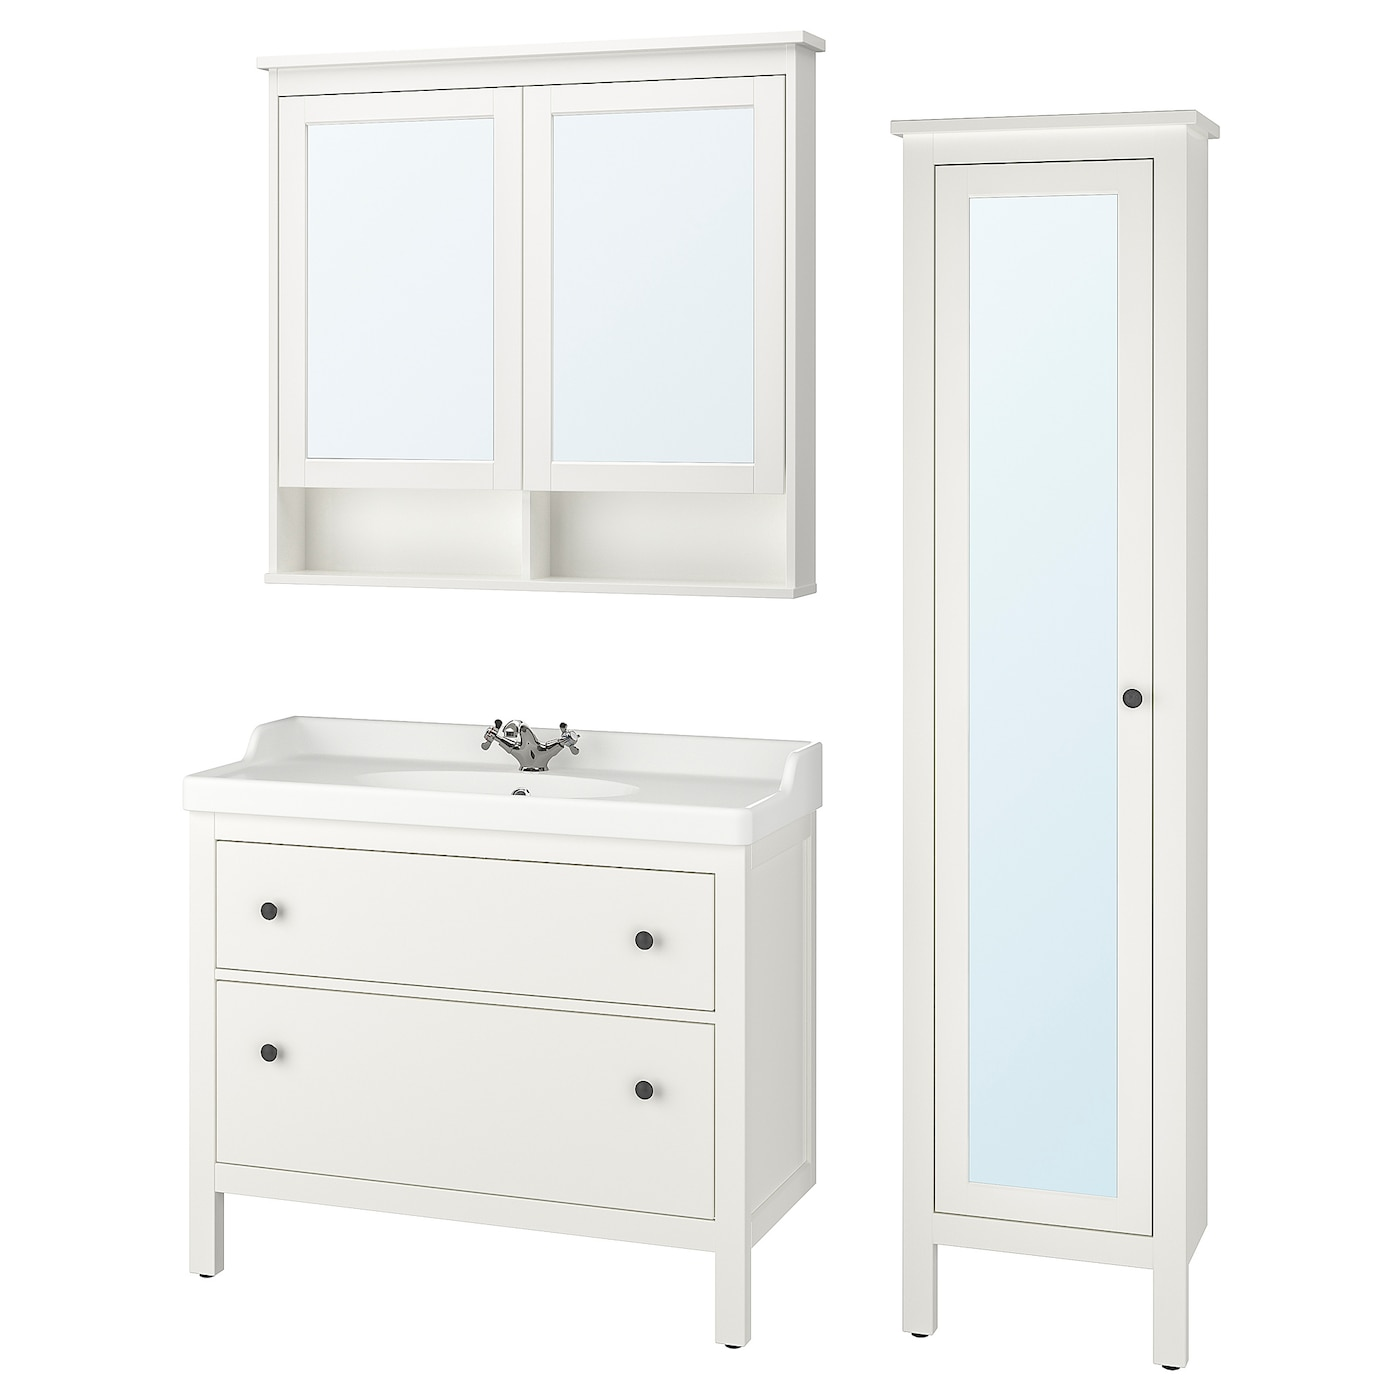 HEMNES / RÄTTVIKEN Bathroom furniture, set of 5 - white ...